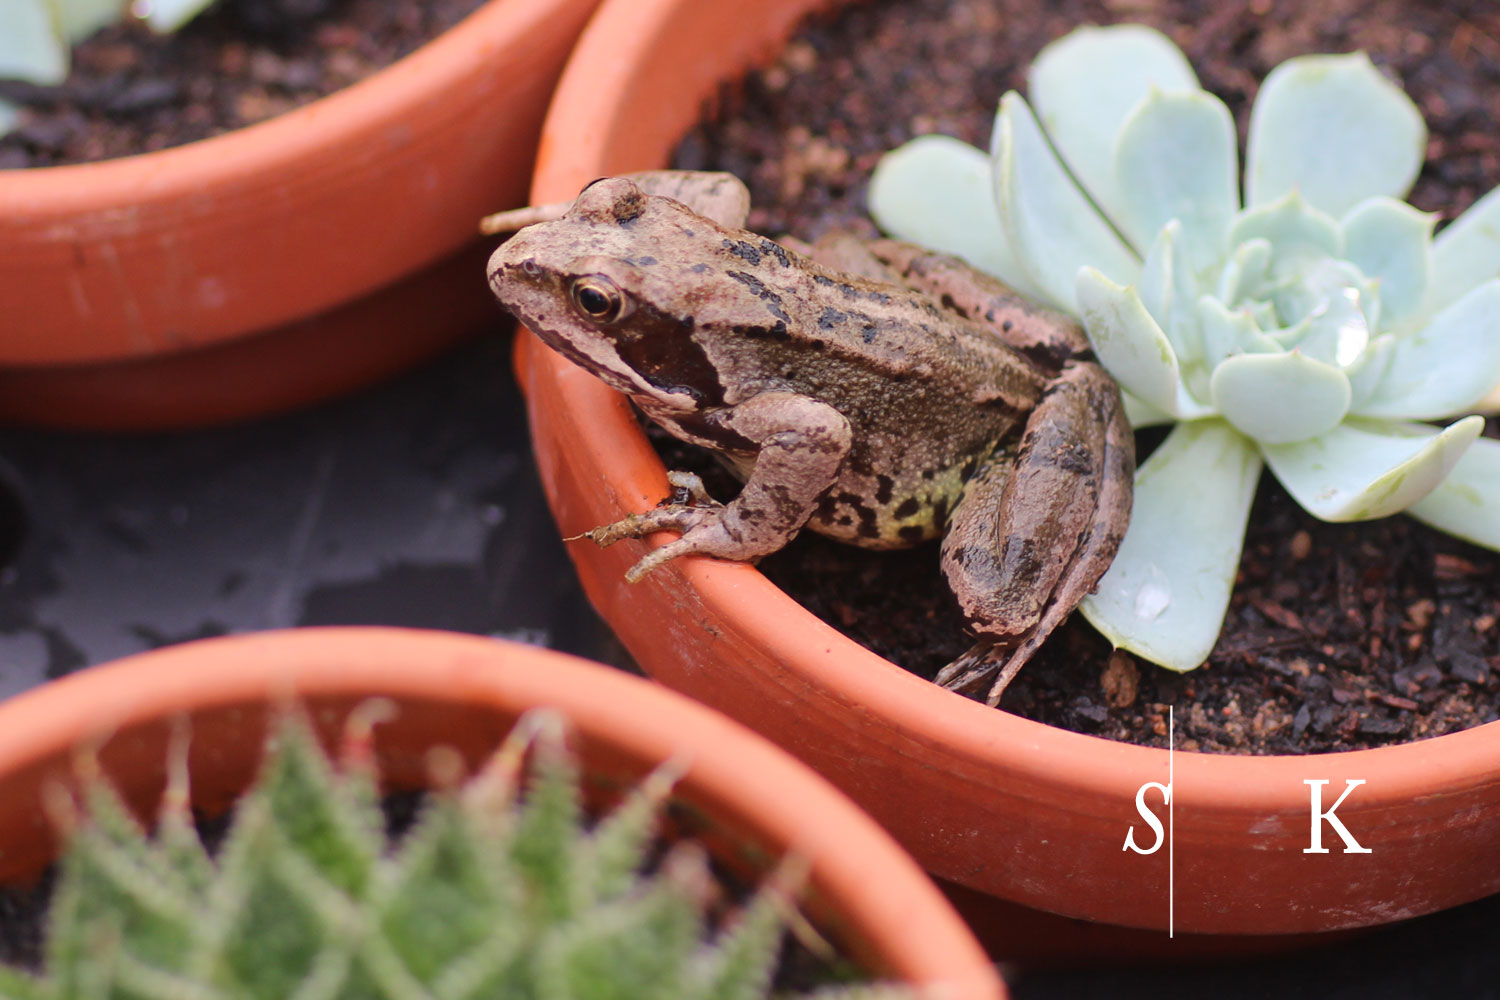 Another frog at the nursery